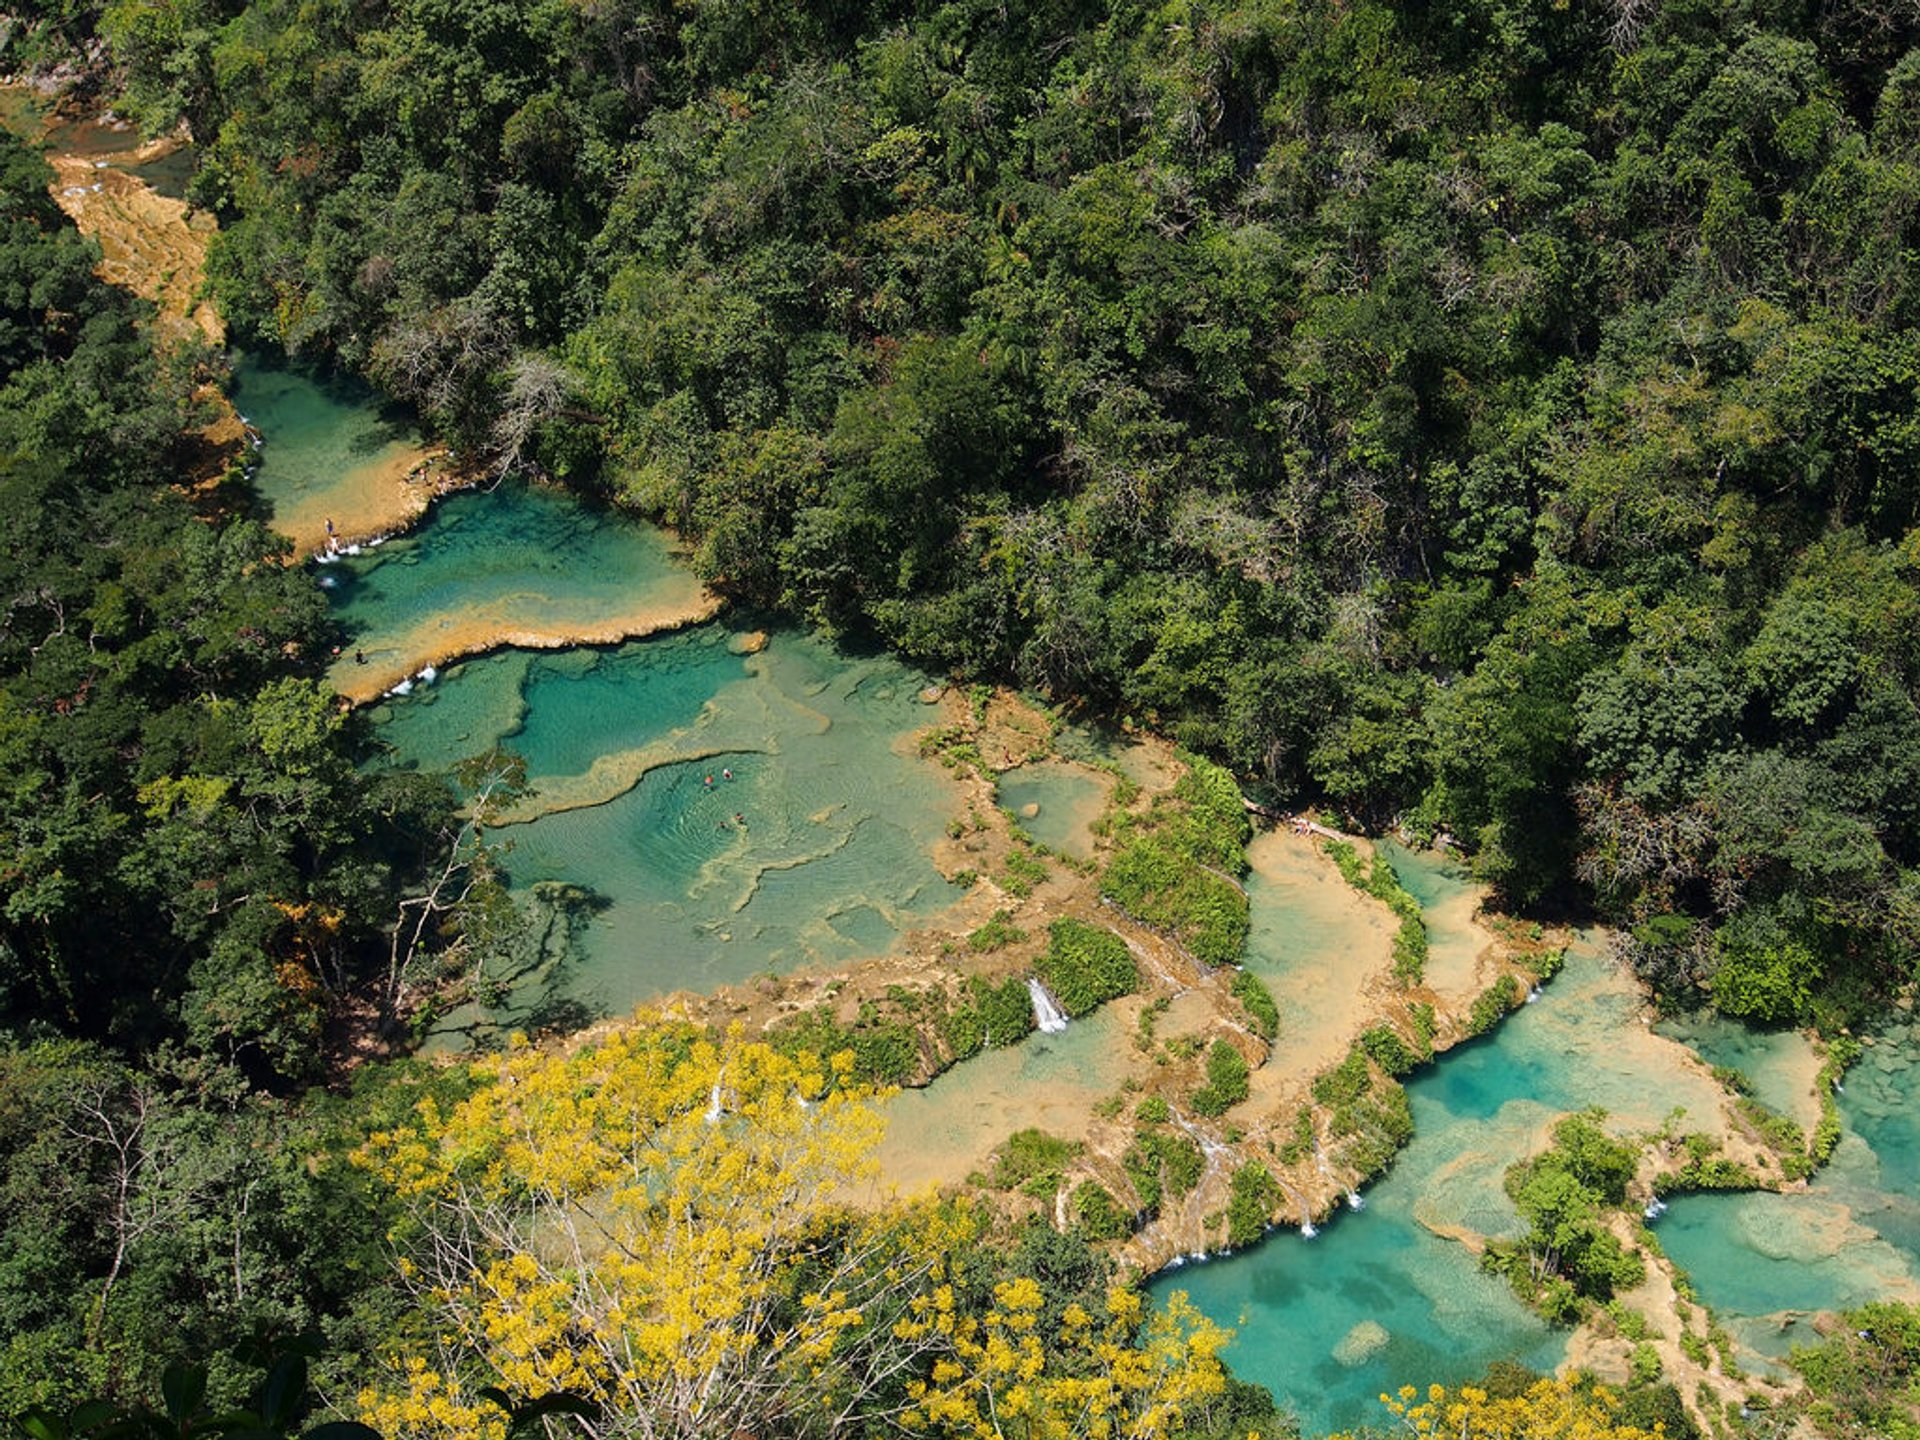 Semuc Champey: Natural Pool Staircase in Guatemala 2020 - Best Time